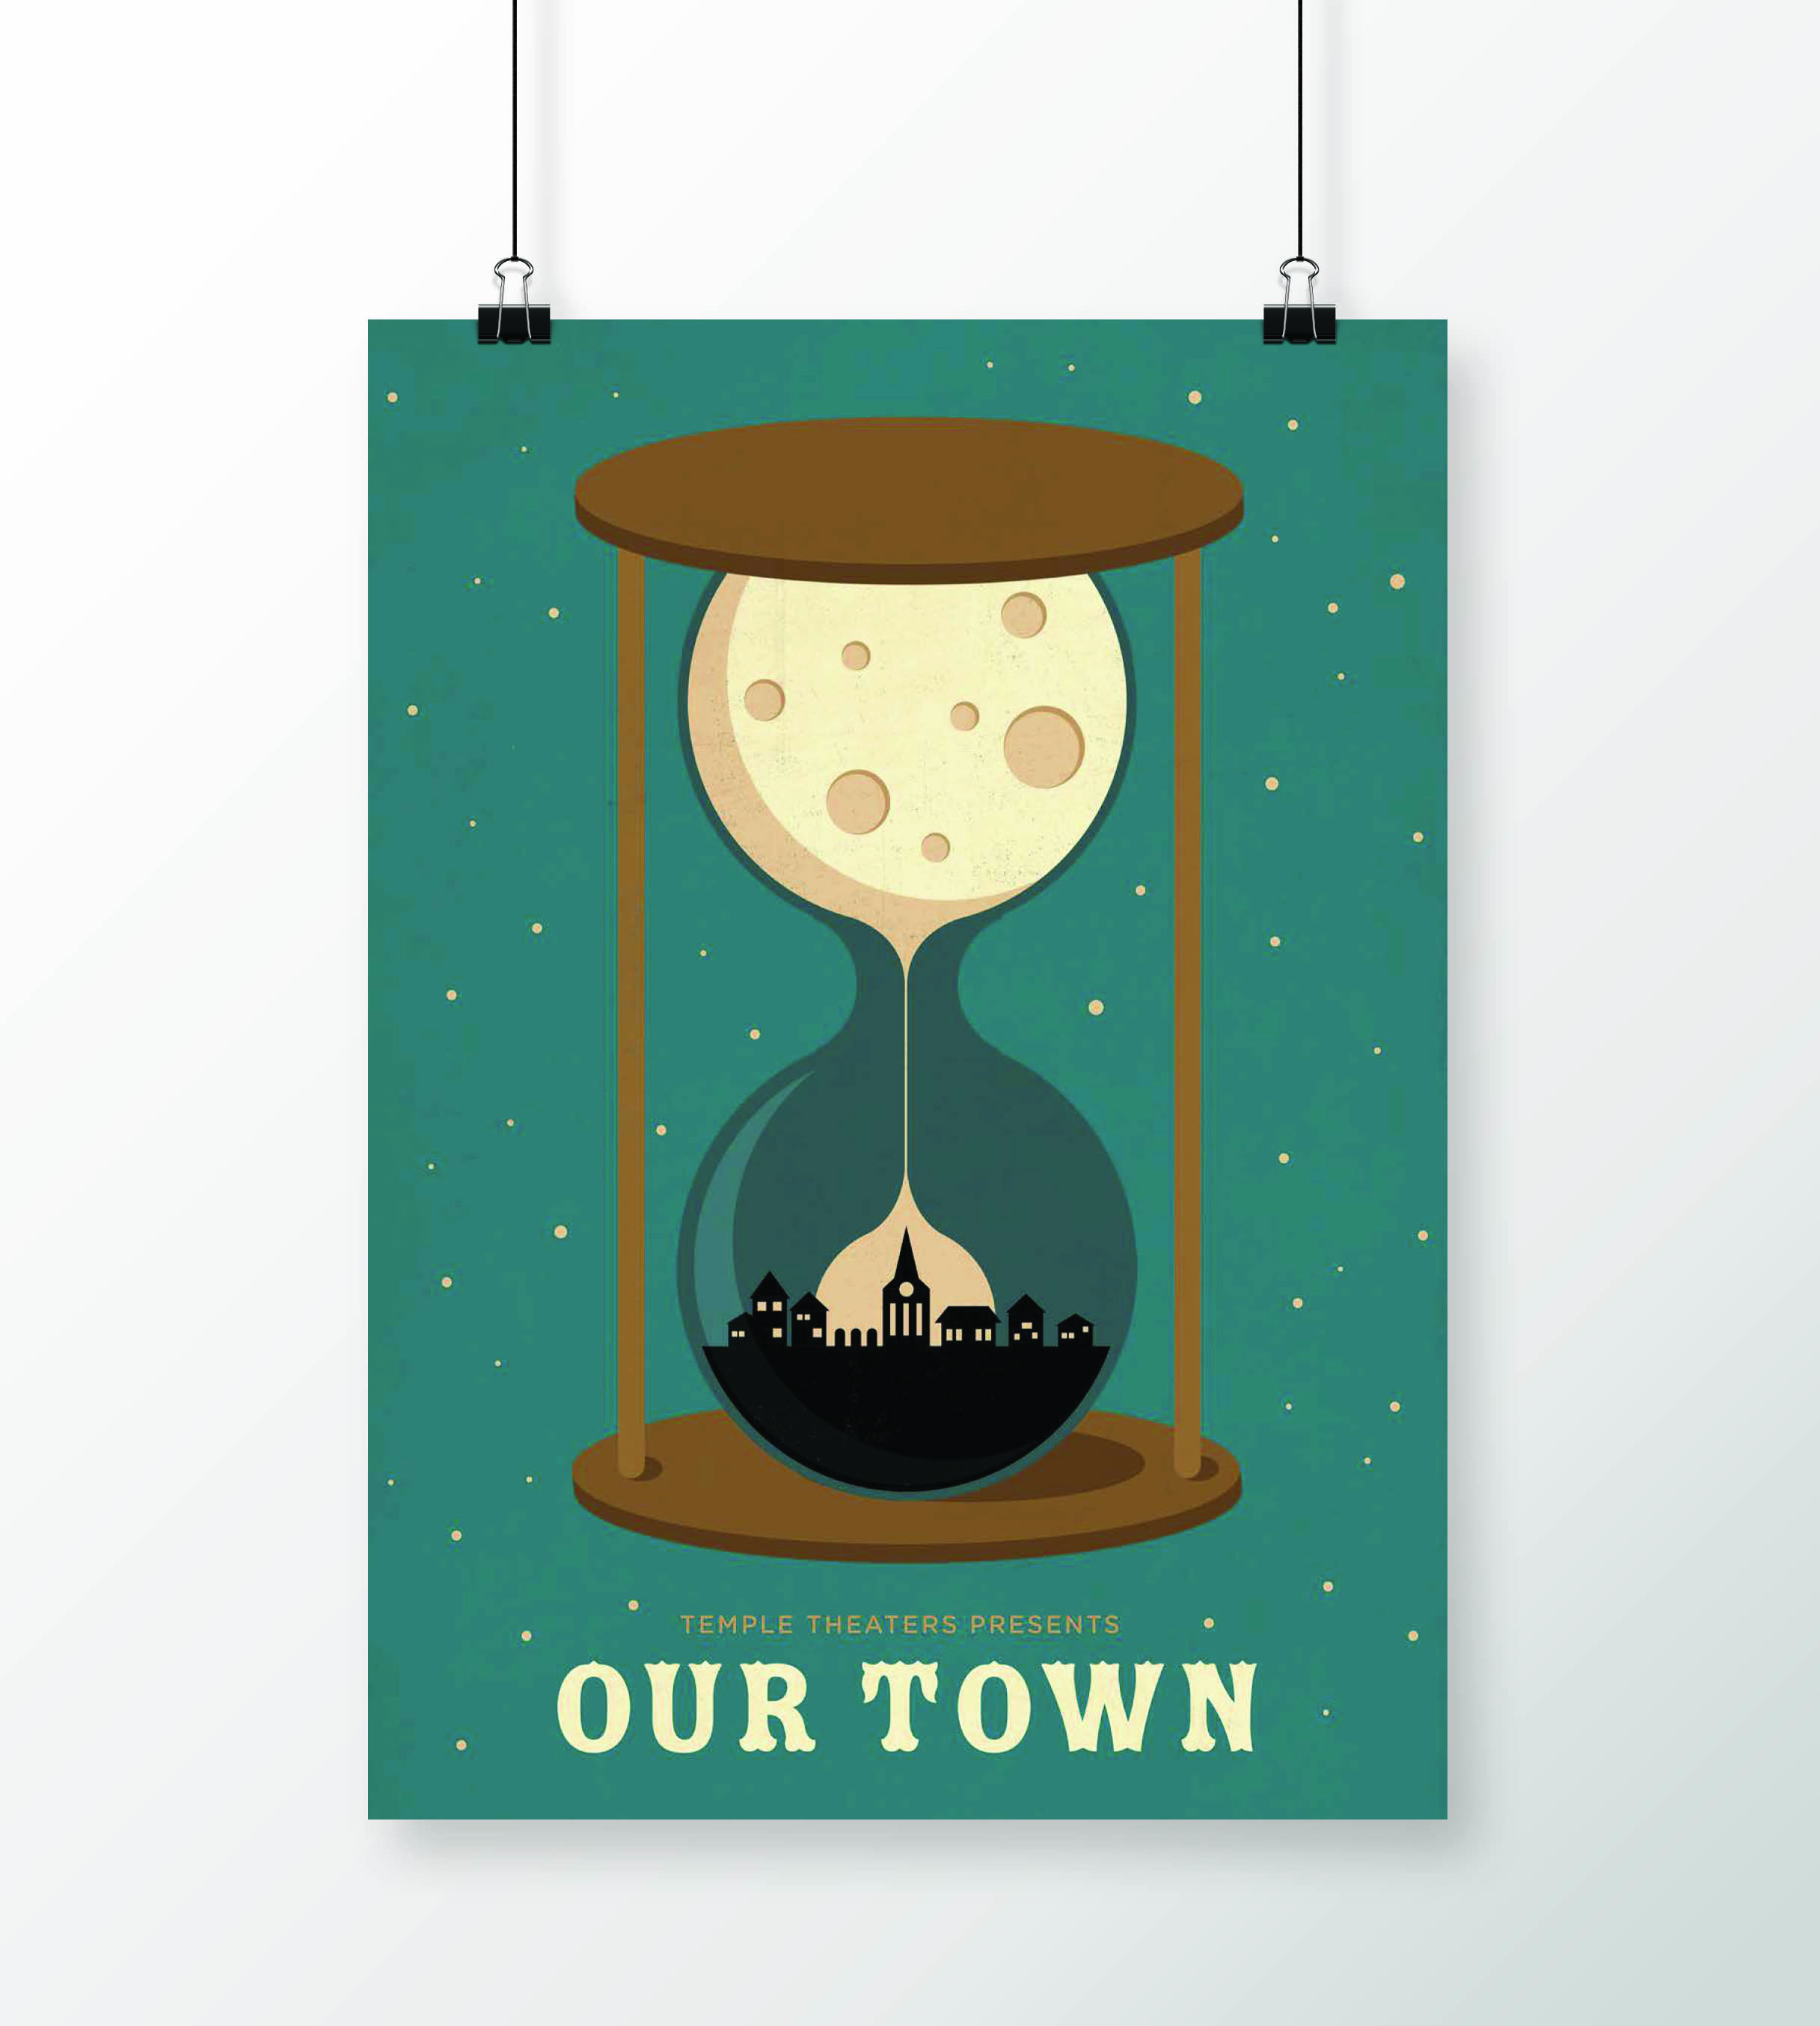 postermockup_ourtown.jpg